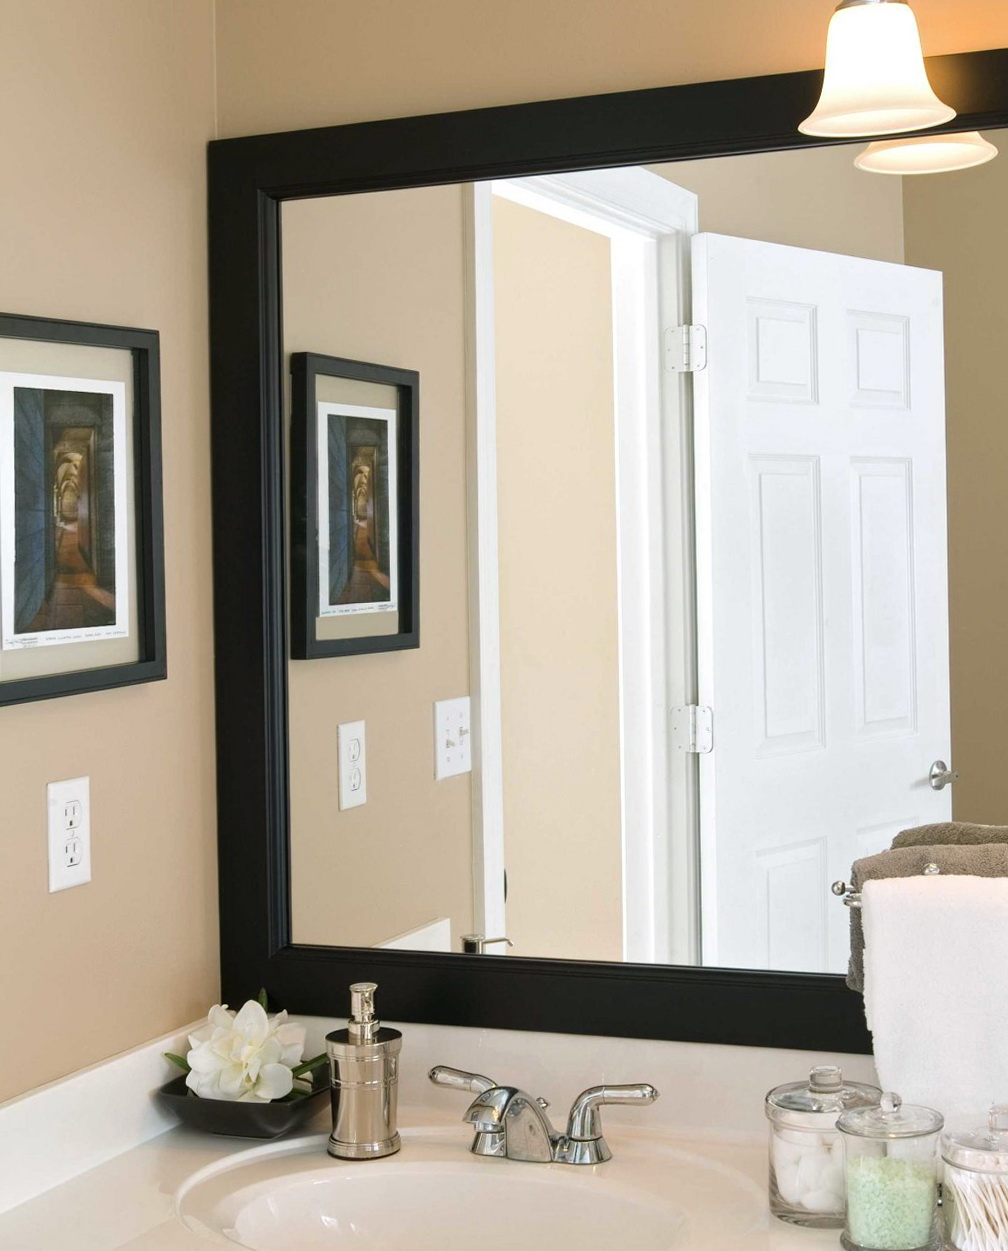 Images Of Framed Bathroom Mirrors